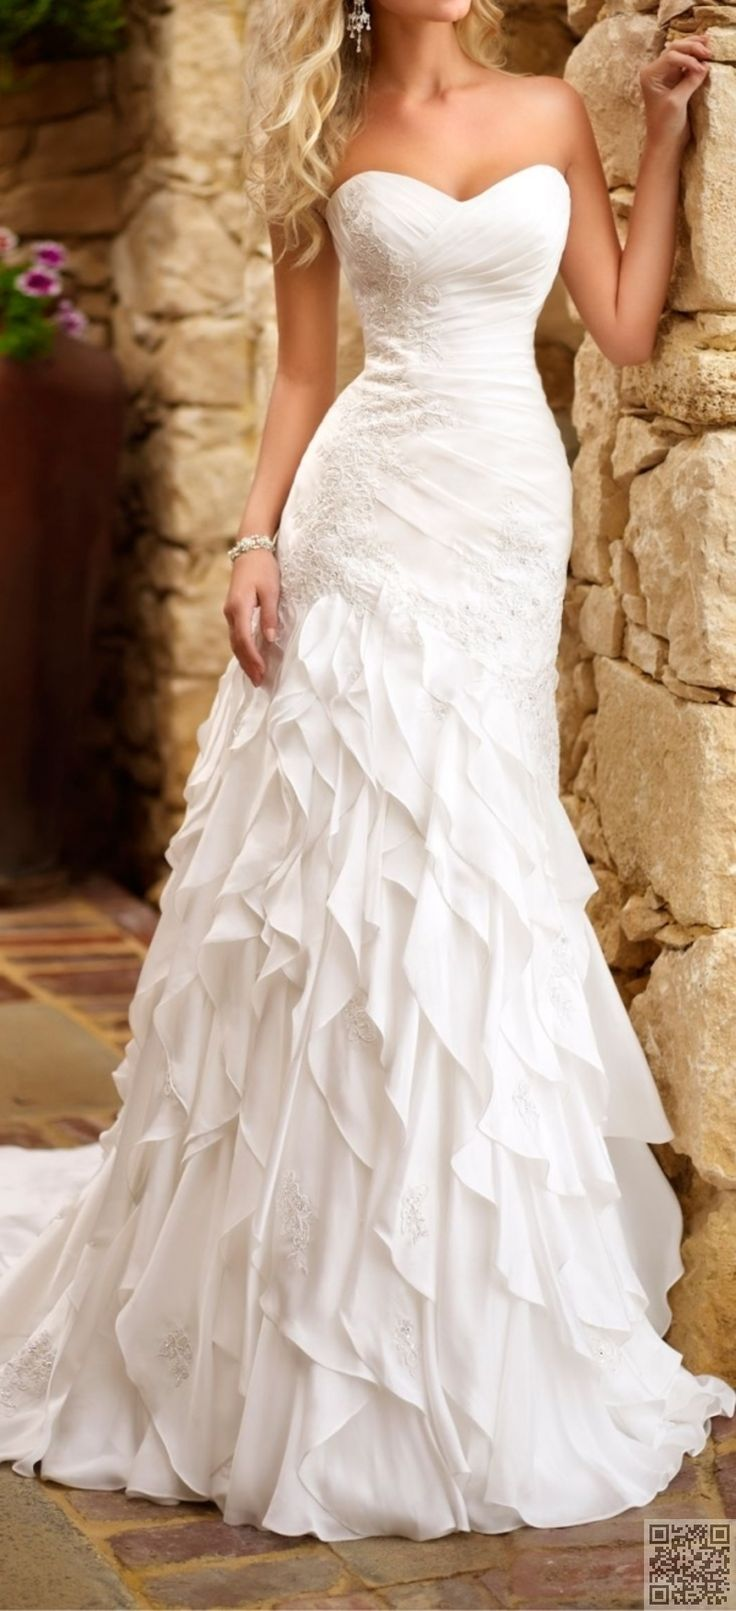 18 Stunning Wedding Gowns That Will Take Your Breath Away